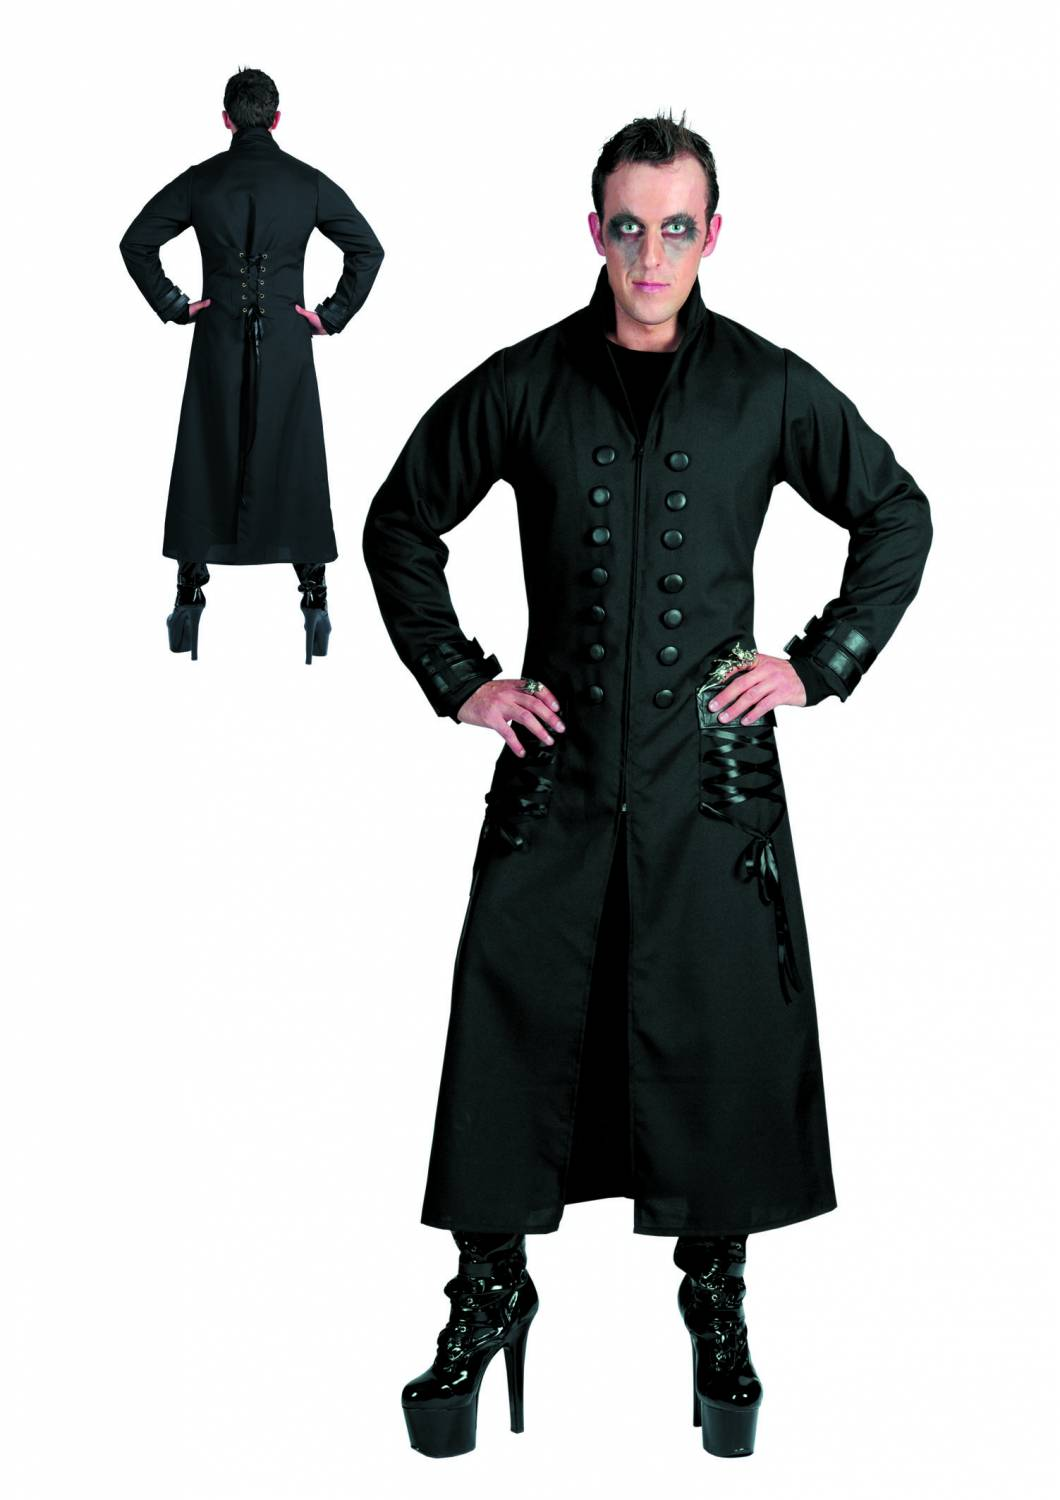 halloweencostumes gothic jacket fancy dress. Black Bedroom Furniture Sets. Home Design Ideas